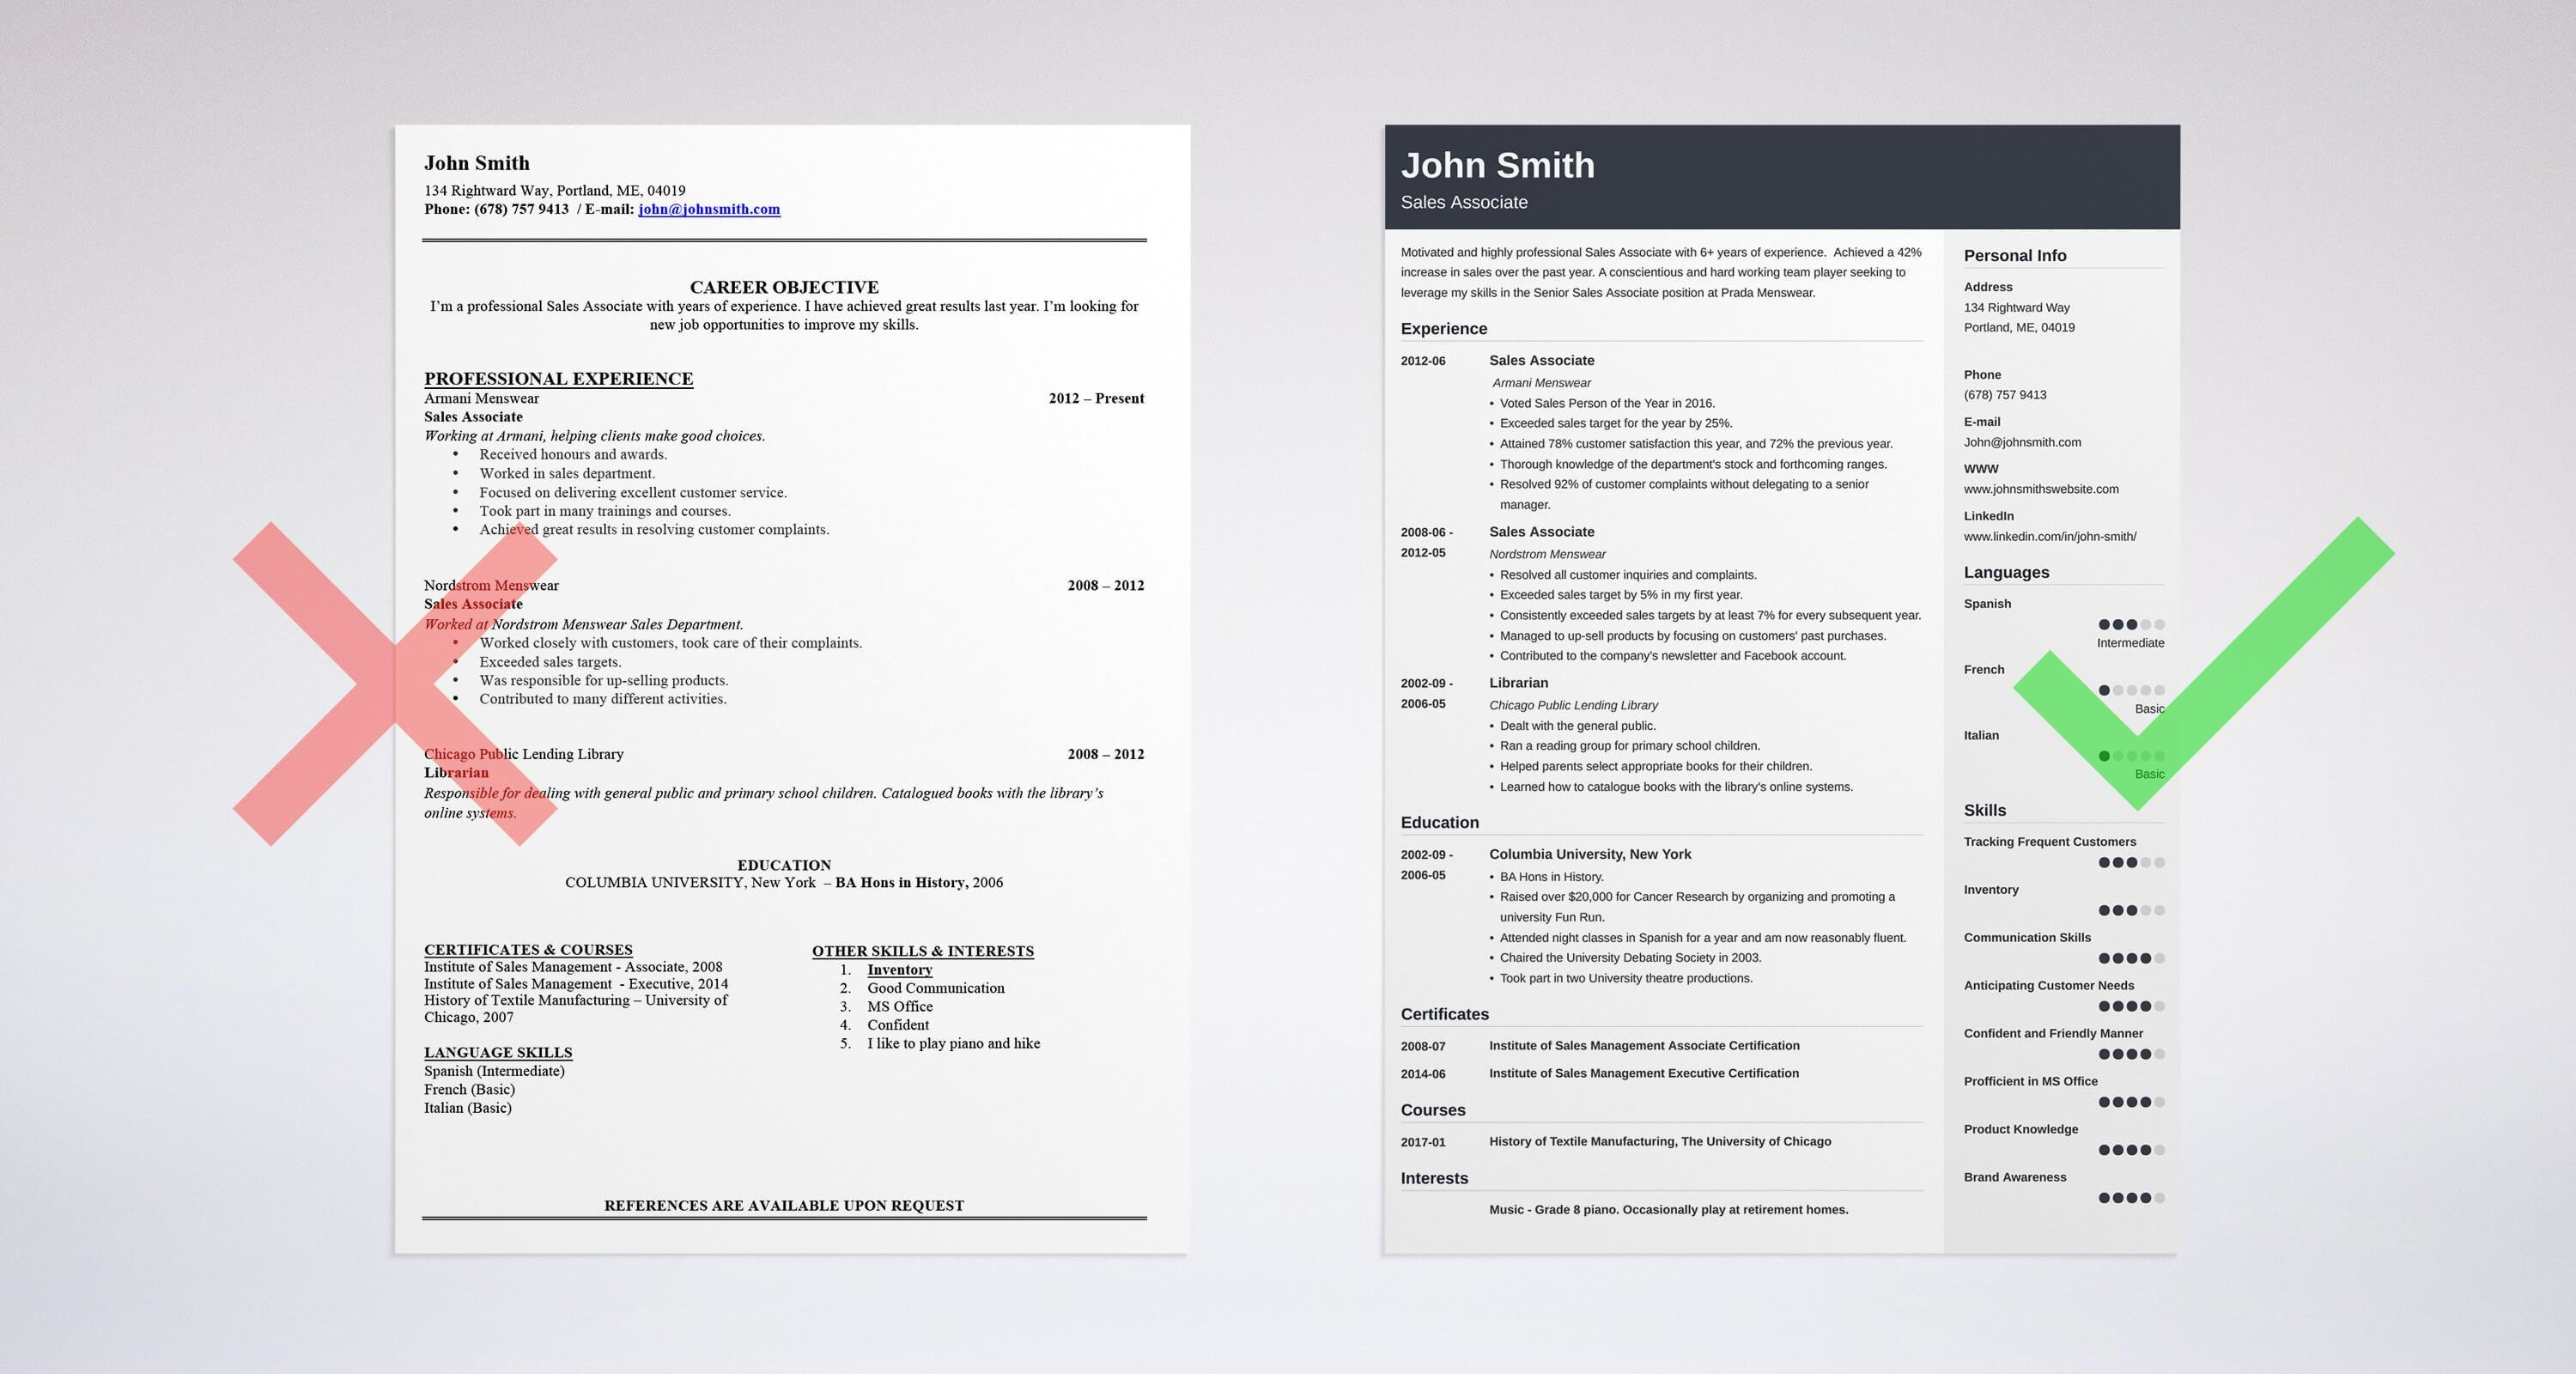 Famous 1 Year Experience Resume Format For Java Thick 1 Year Experience Resume Format For Java Developer Shaped 11x17 Poster Template 1930s Newspaper Template Young 2 Page Resume Format Header Bright2 Week Schedule Template How To Write A Resume Summary: 21 Best Examples You Will See